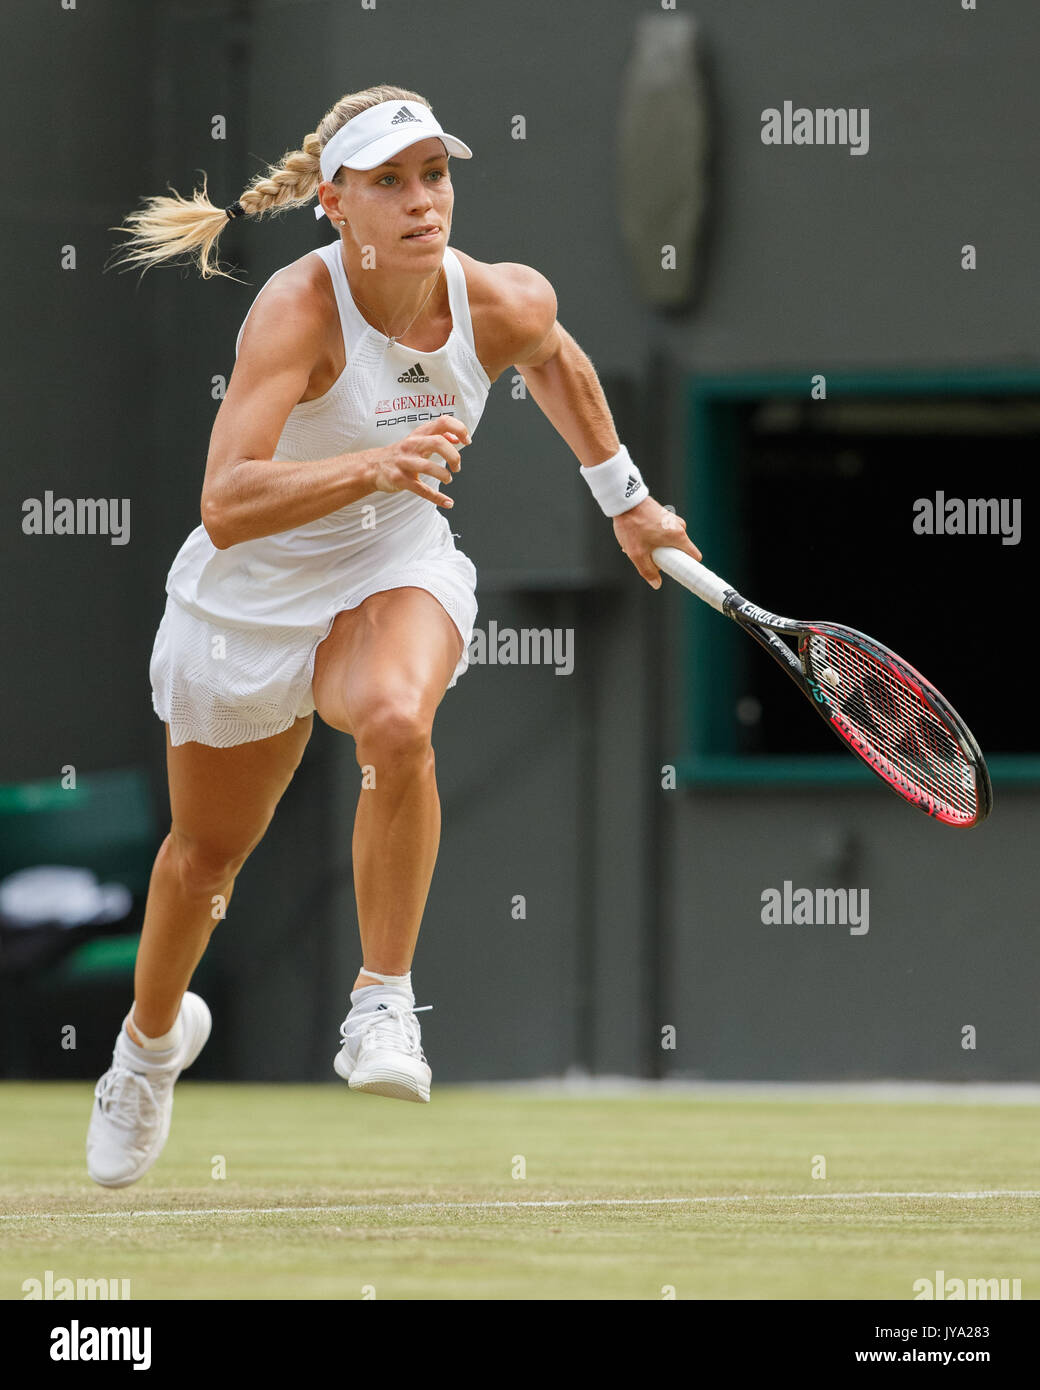 ANGELIQUE KERBER (GER) in action at Wimbledon - Stock Image